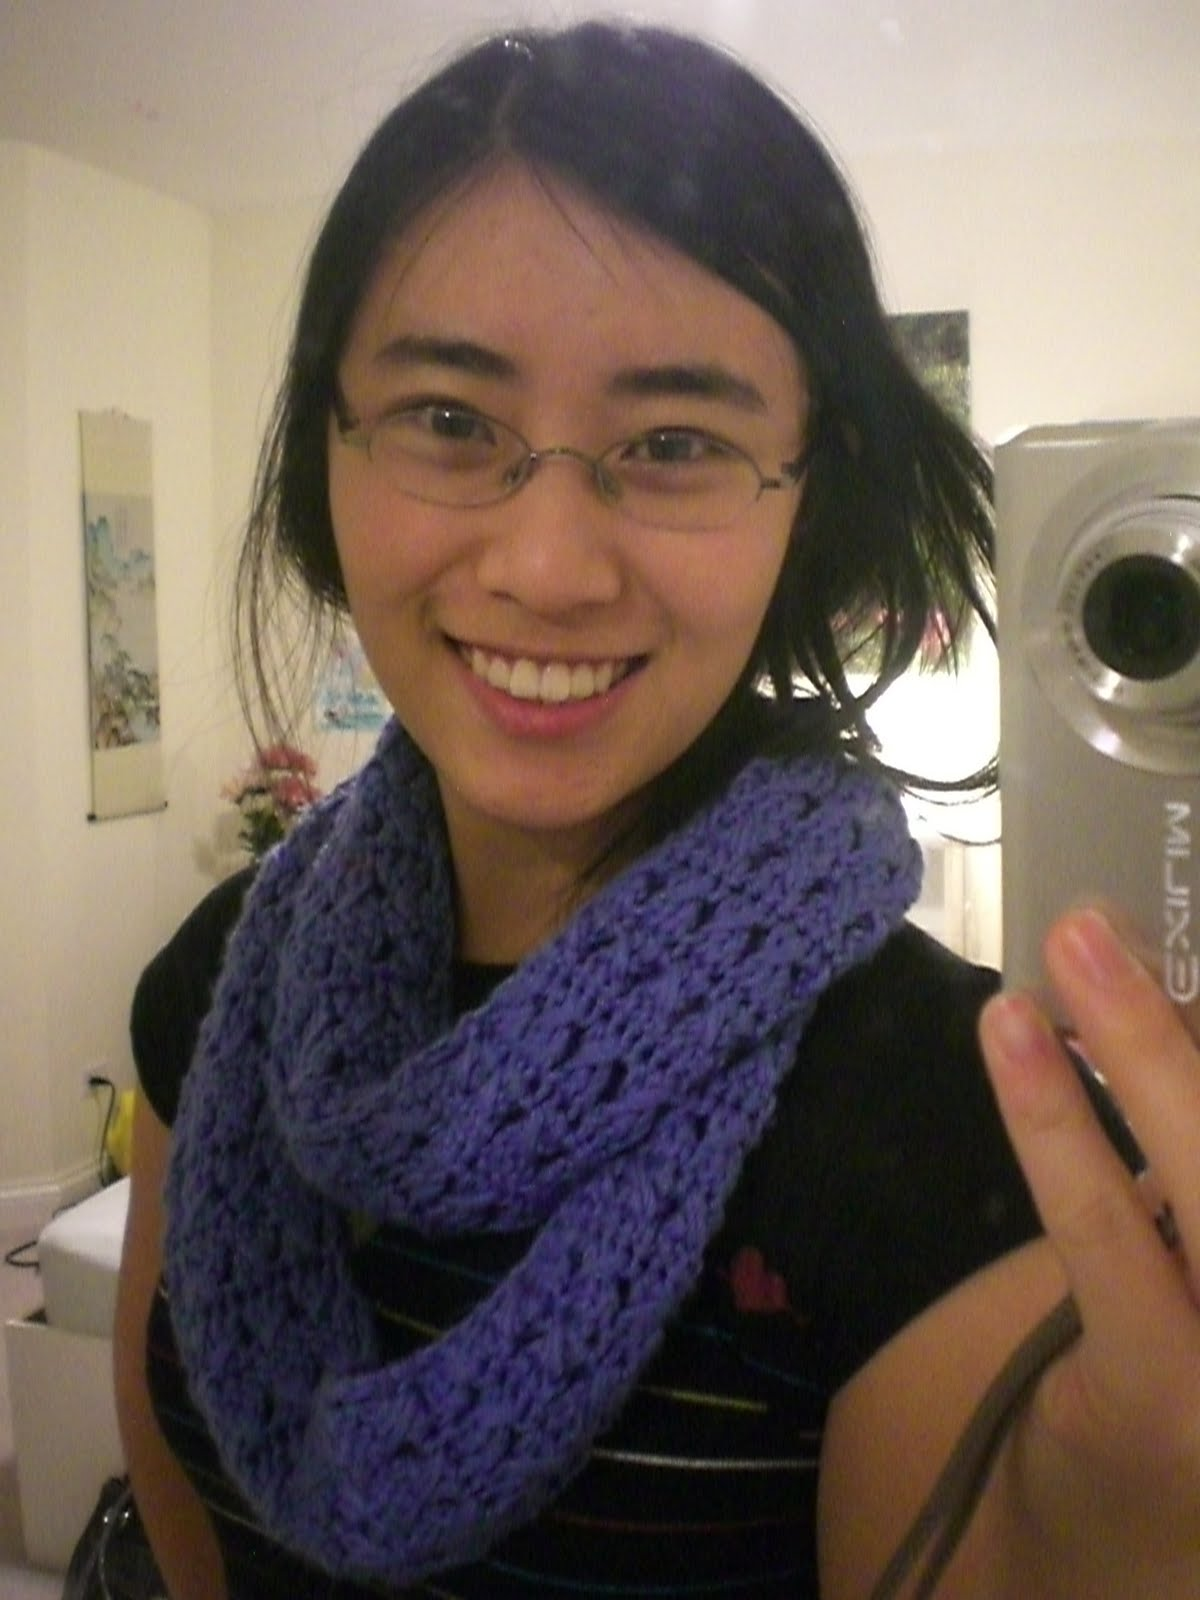 The Stingy Stitcher: Blue infinity scarf: A Forever 21 knock-off, shhh!